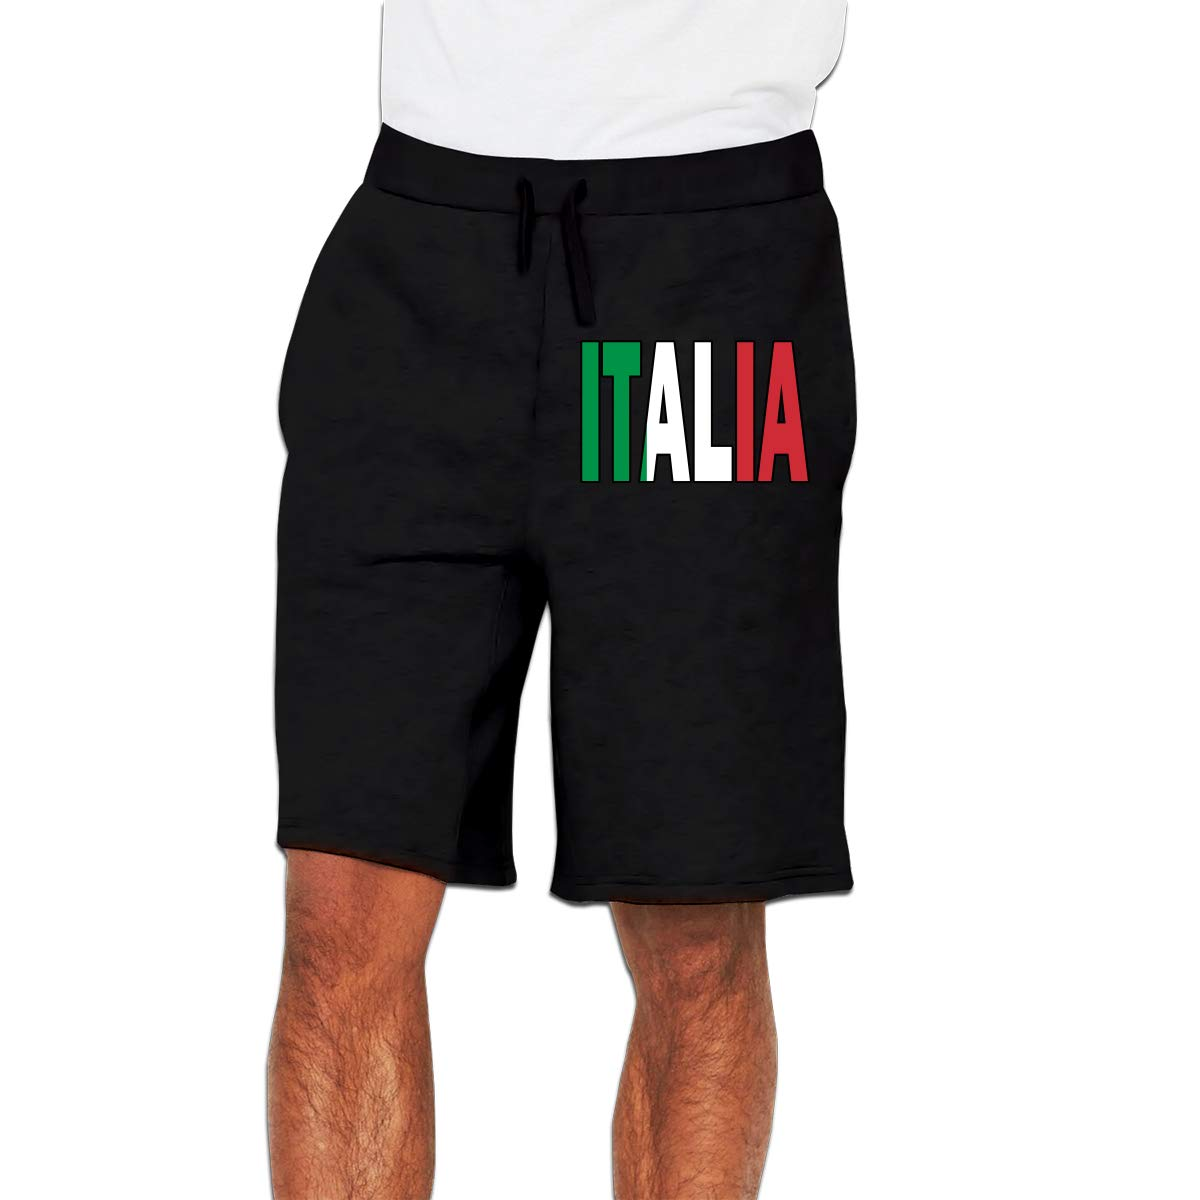 YDXC6FY Mens Board Short Italia Flag Italian Patterned Club Shorts